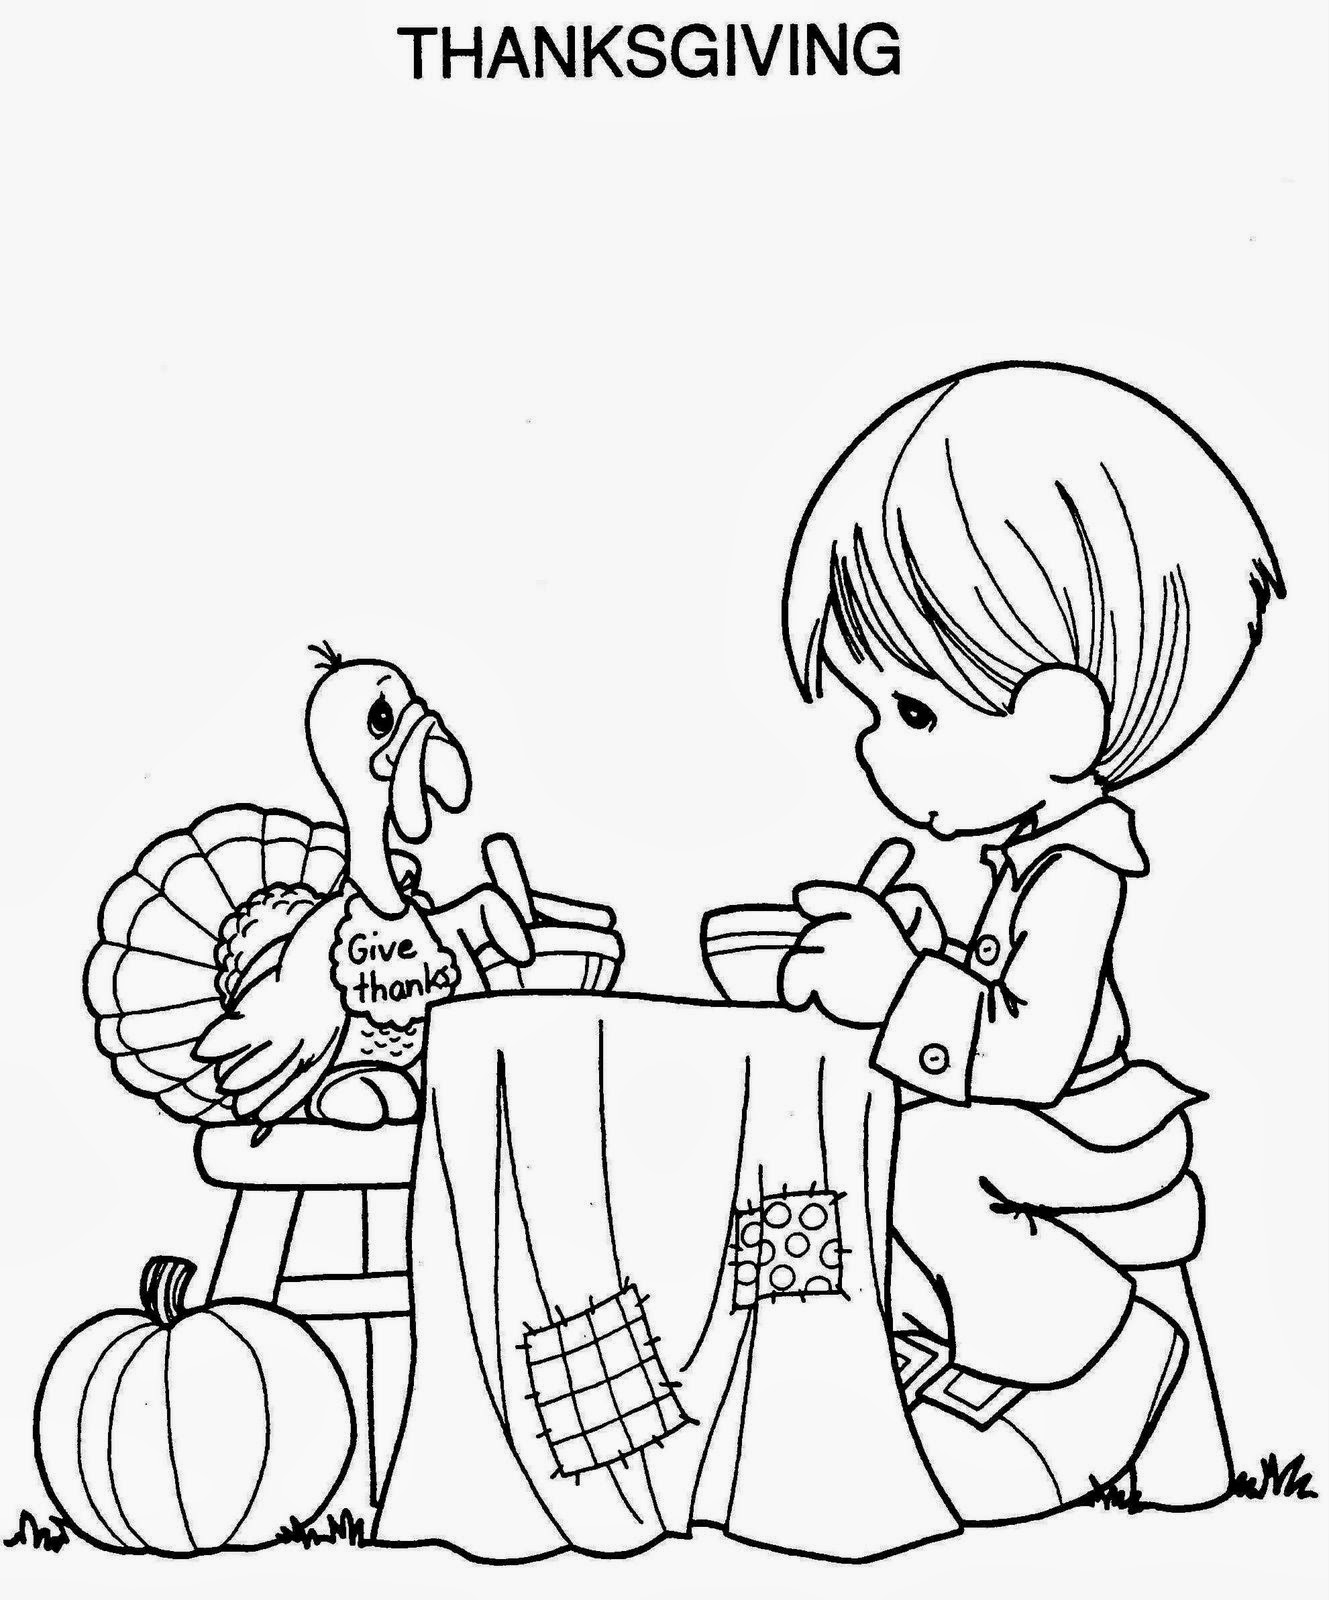 thanksgiving pilgrim coloring pages - thanksgiving day for coloring part 1